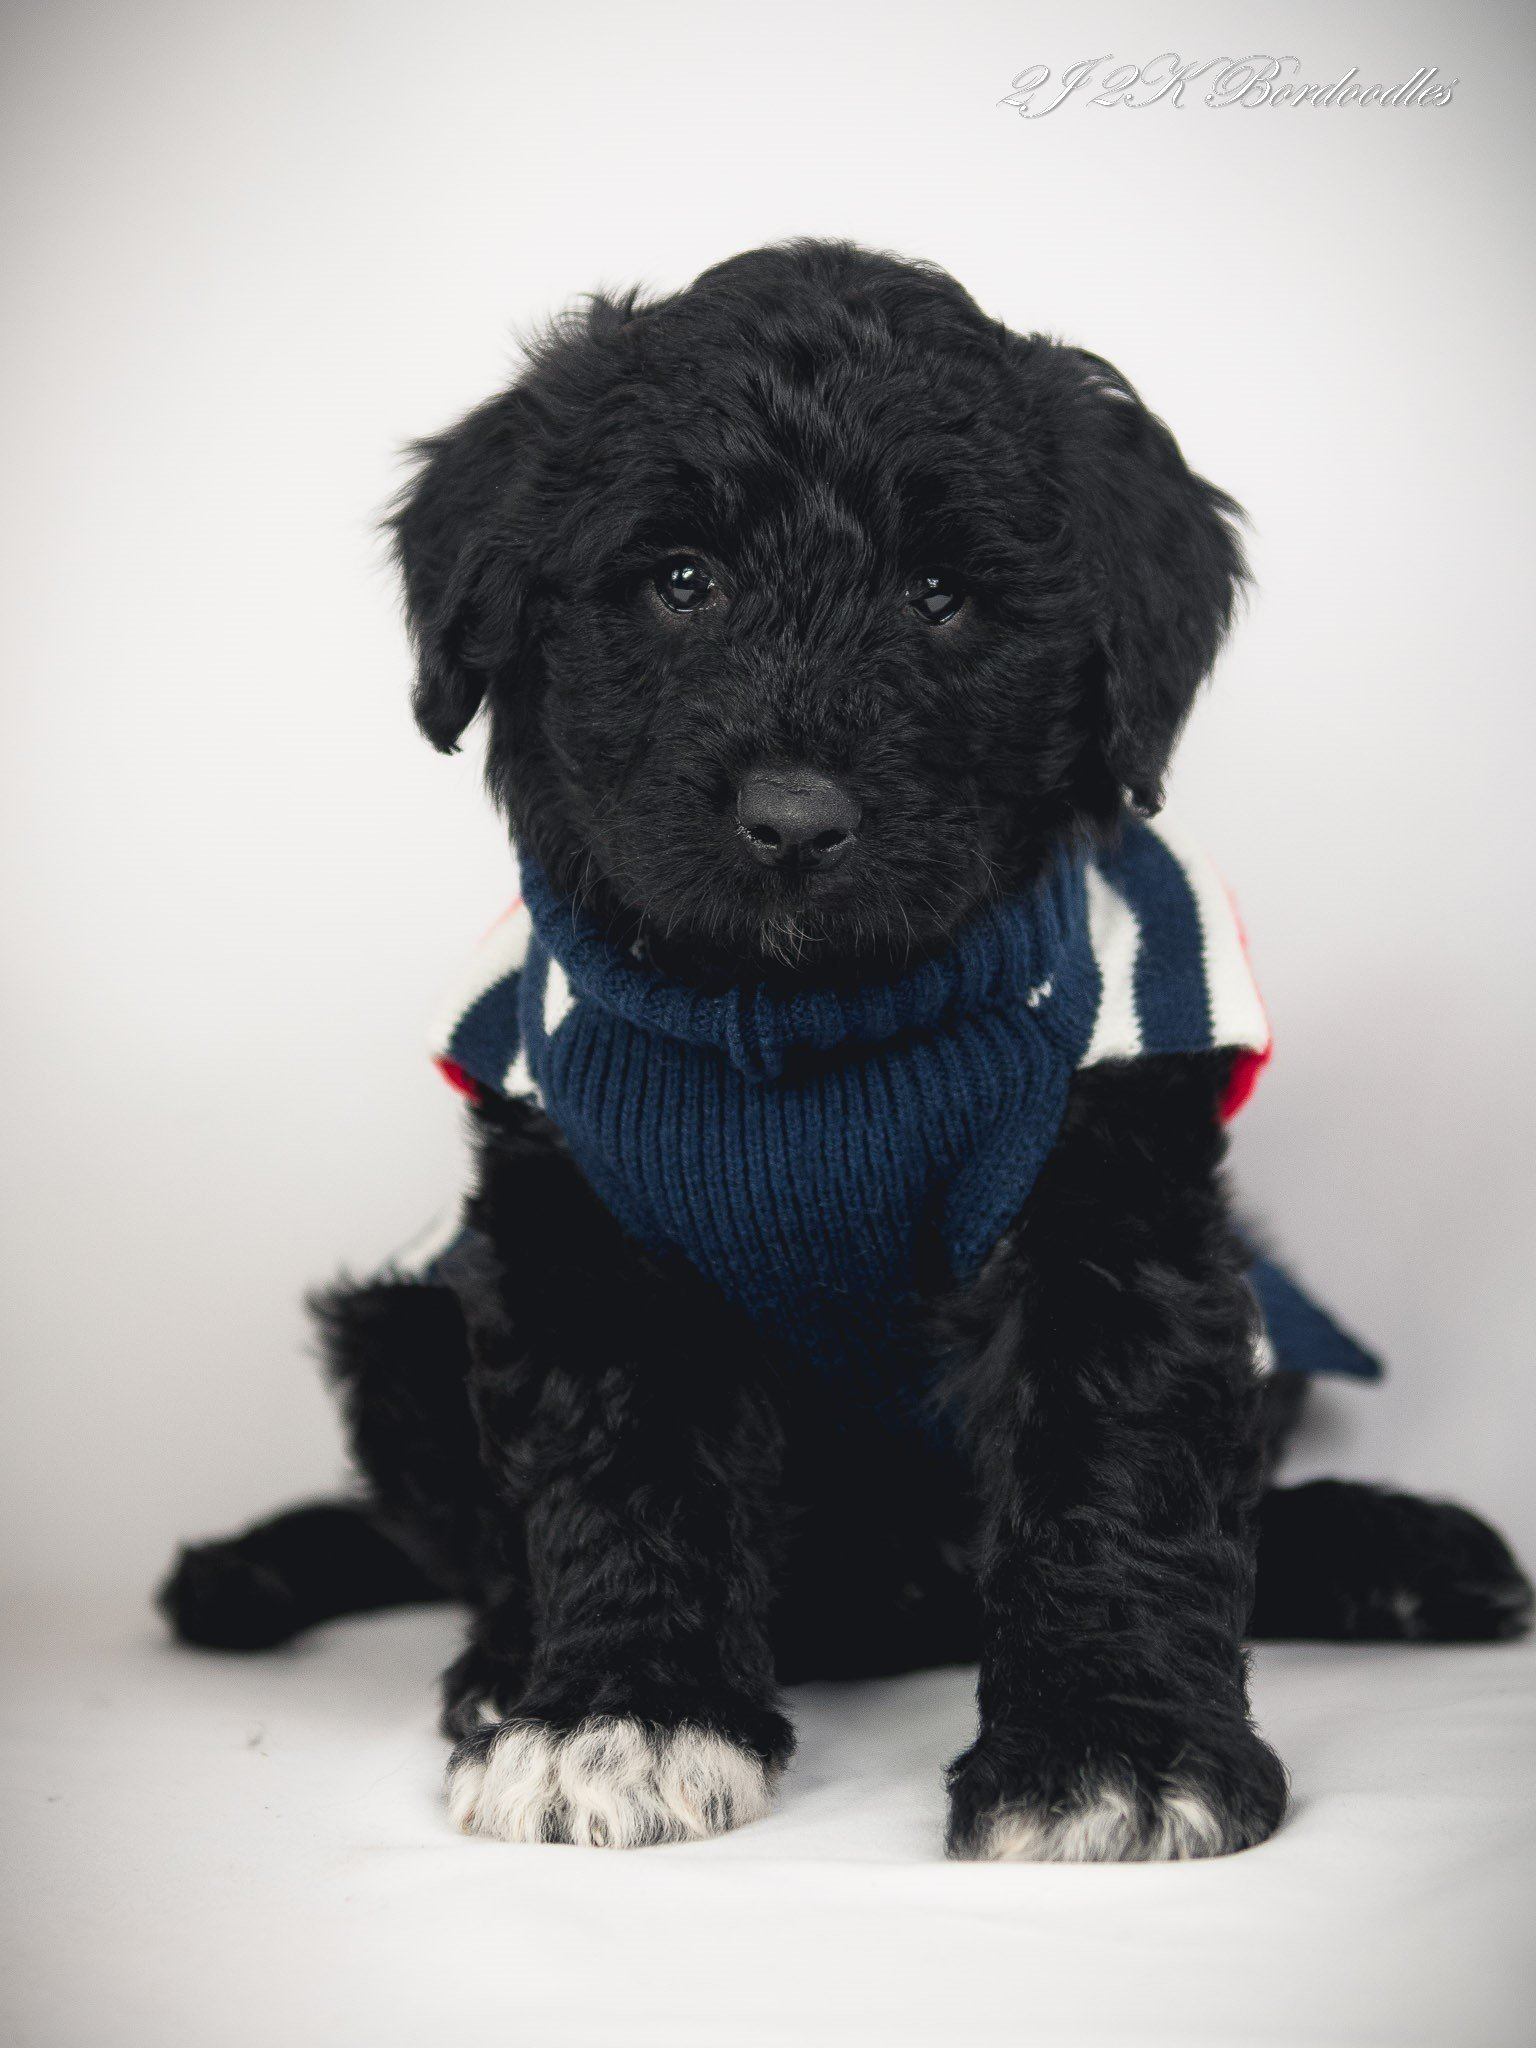 A black and white Bordoodle puppy standing with a white background.